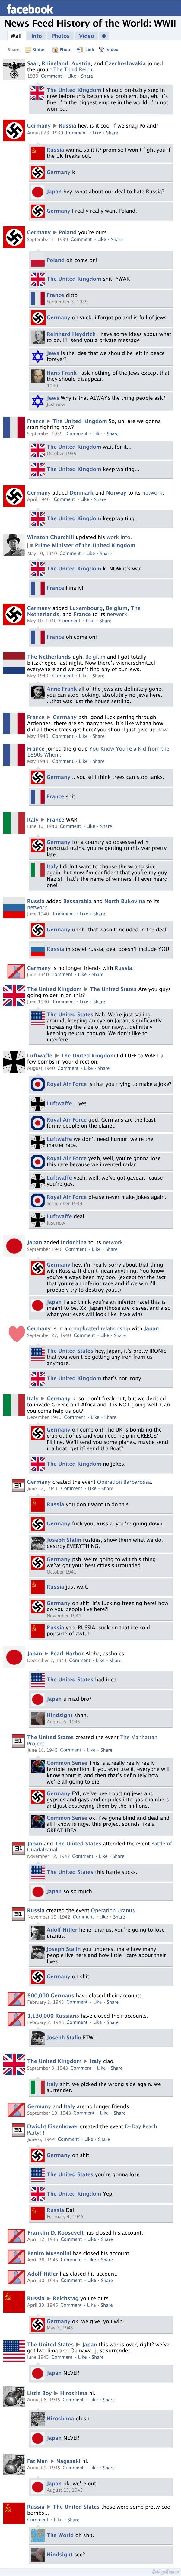 """""""Facebook News Feed History of the World: World War I to World War II"""" by Susanna Wolff - CollegeHumor Article - Part 3"""